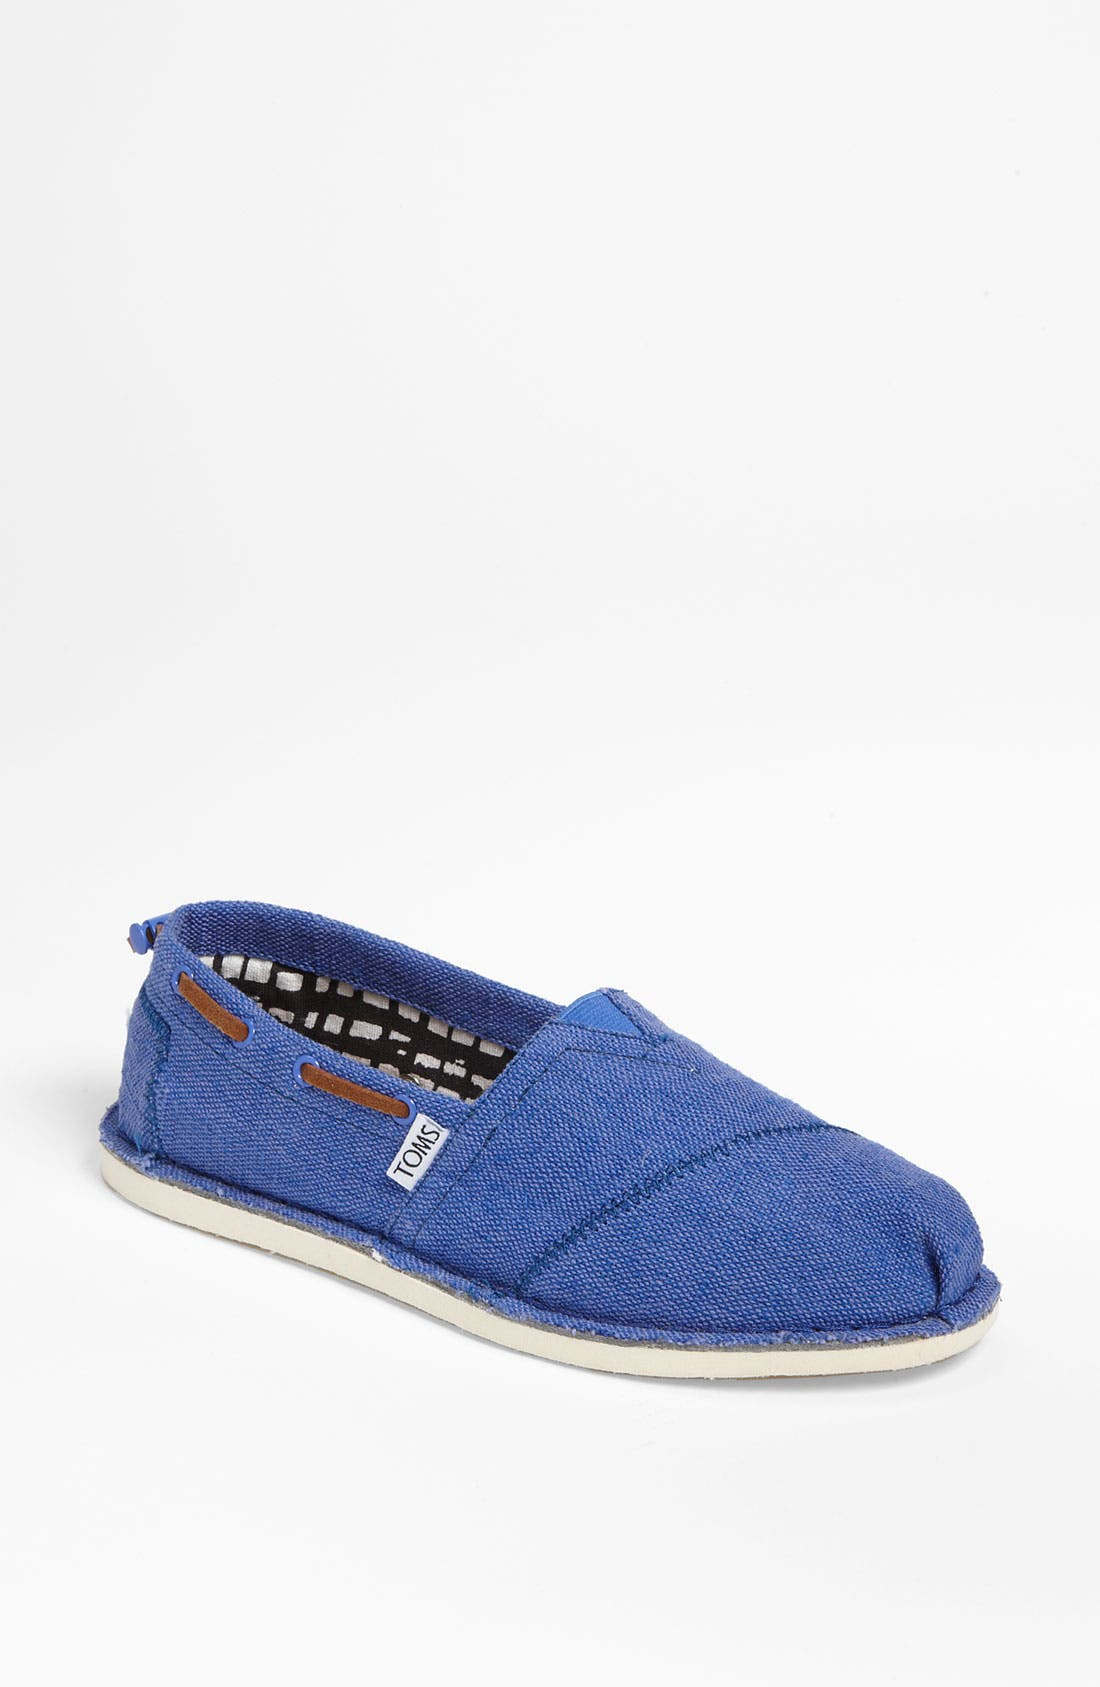 Main Image - TOMS 'Bimini' Slip-On (Women)